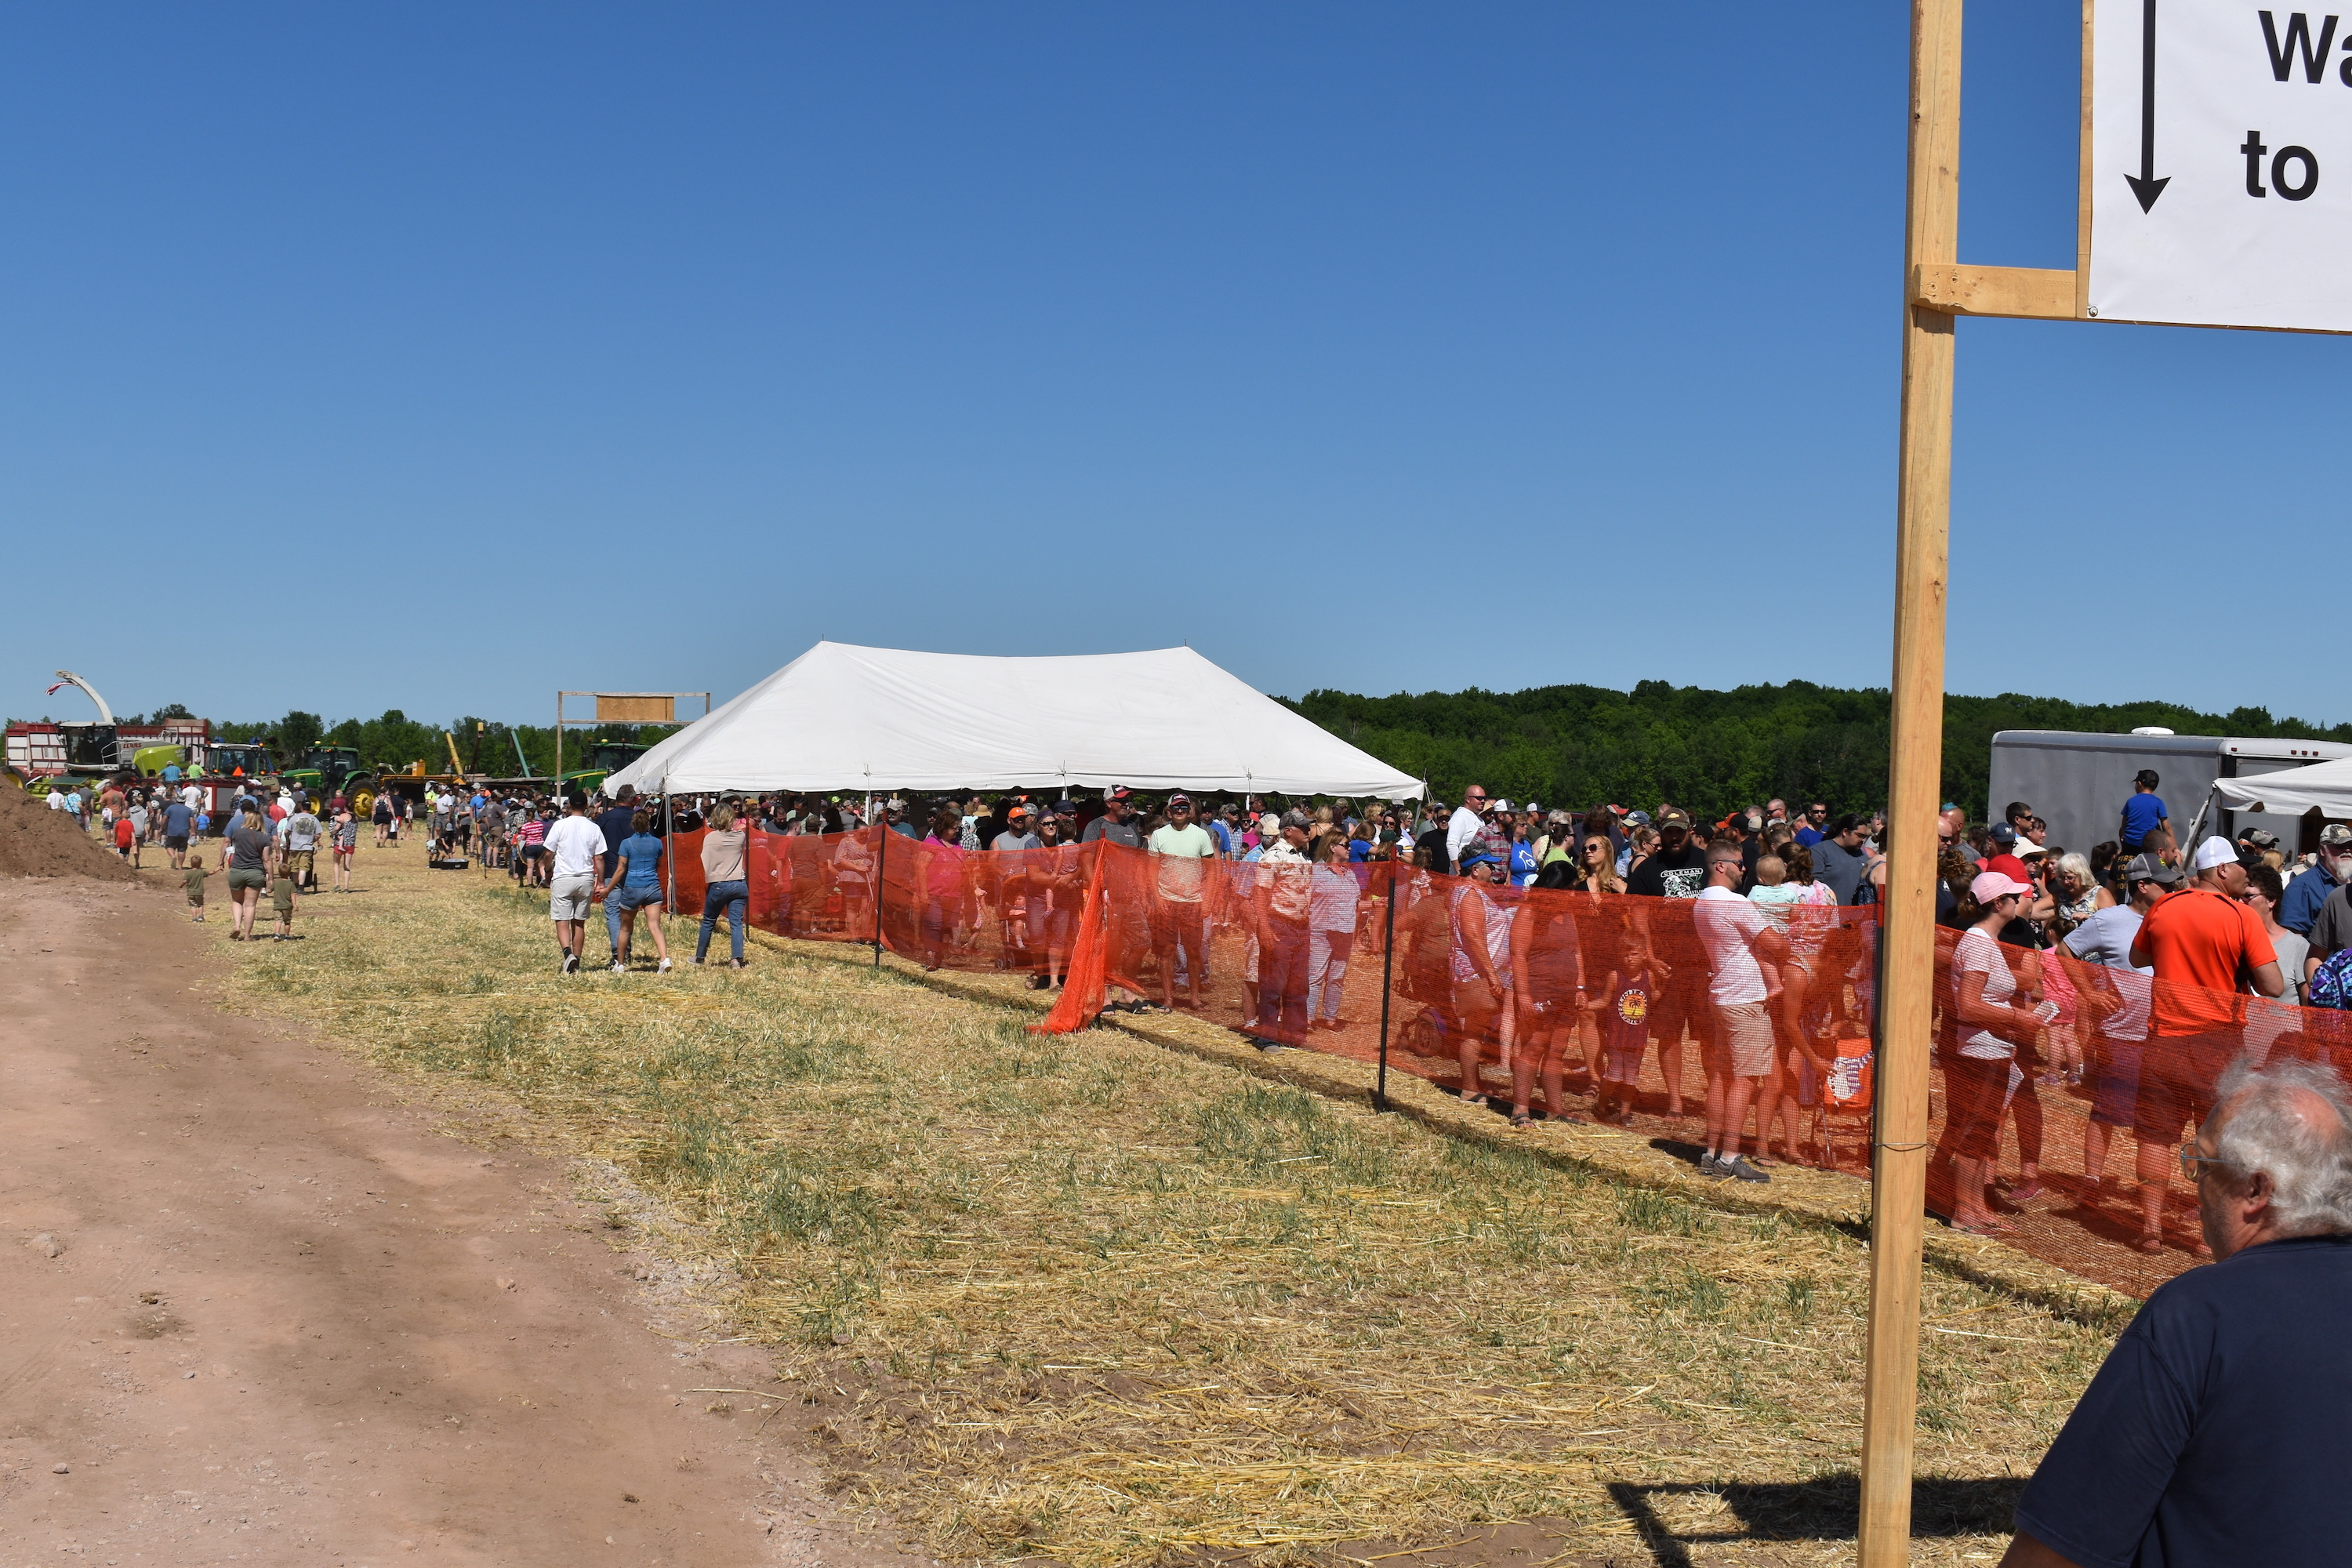 Breakfast on the Farm typically serves about 1,000 people an hour for the five-hour event.